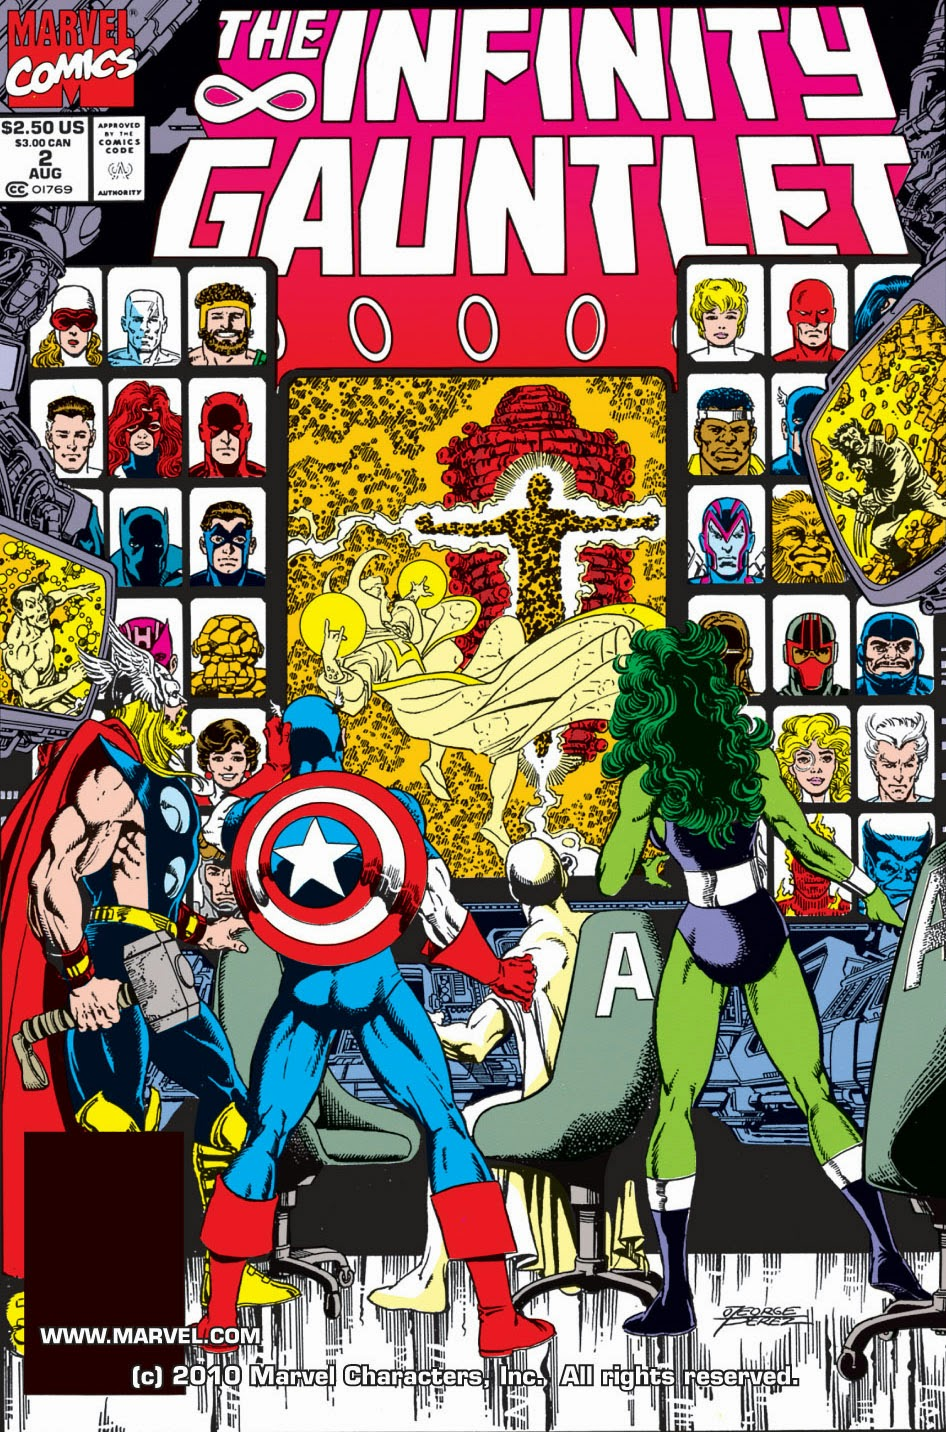 infinity gauntlet | viewcomic reading comics online for free 2018